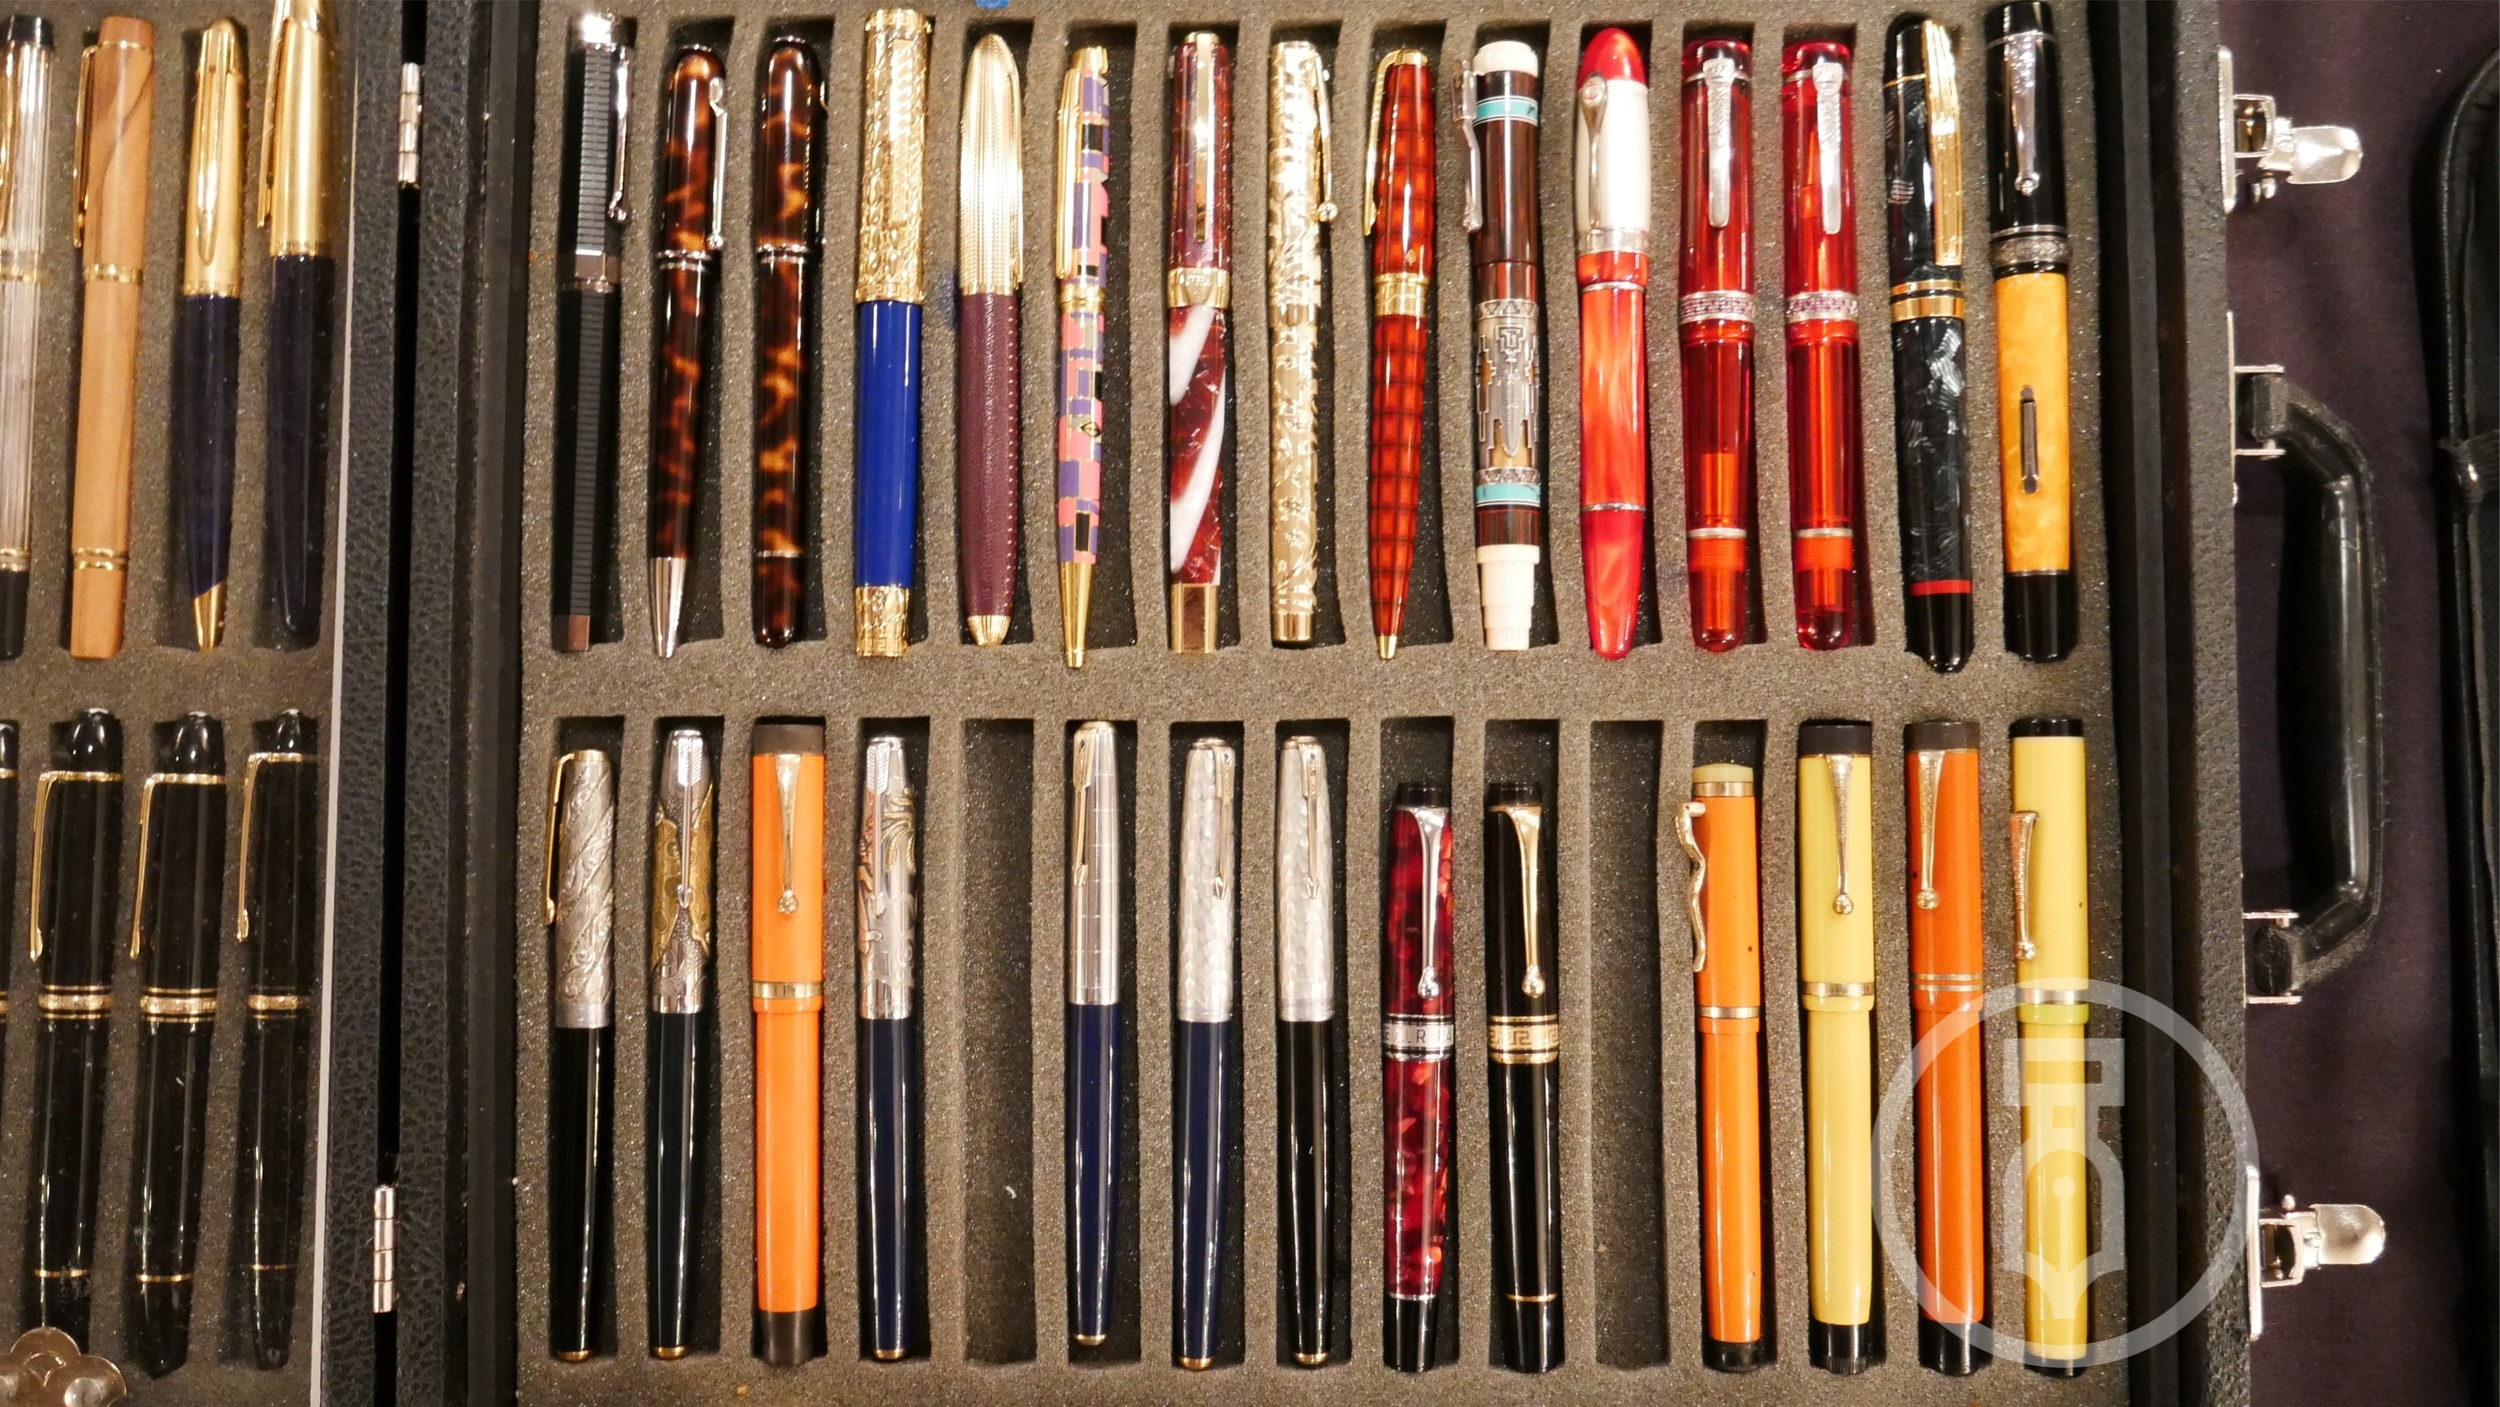 Paul Erano pens and it's not all vintage